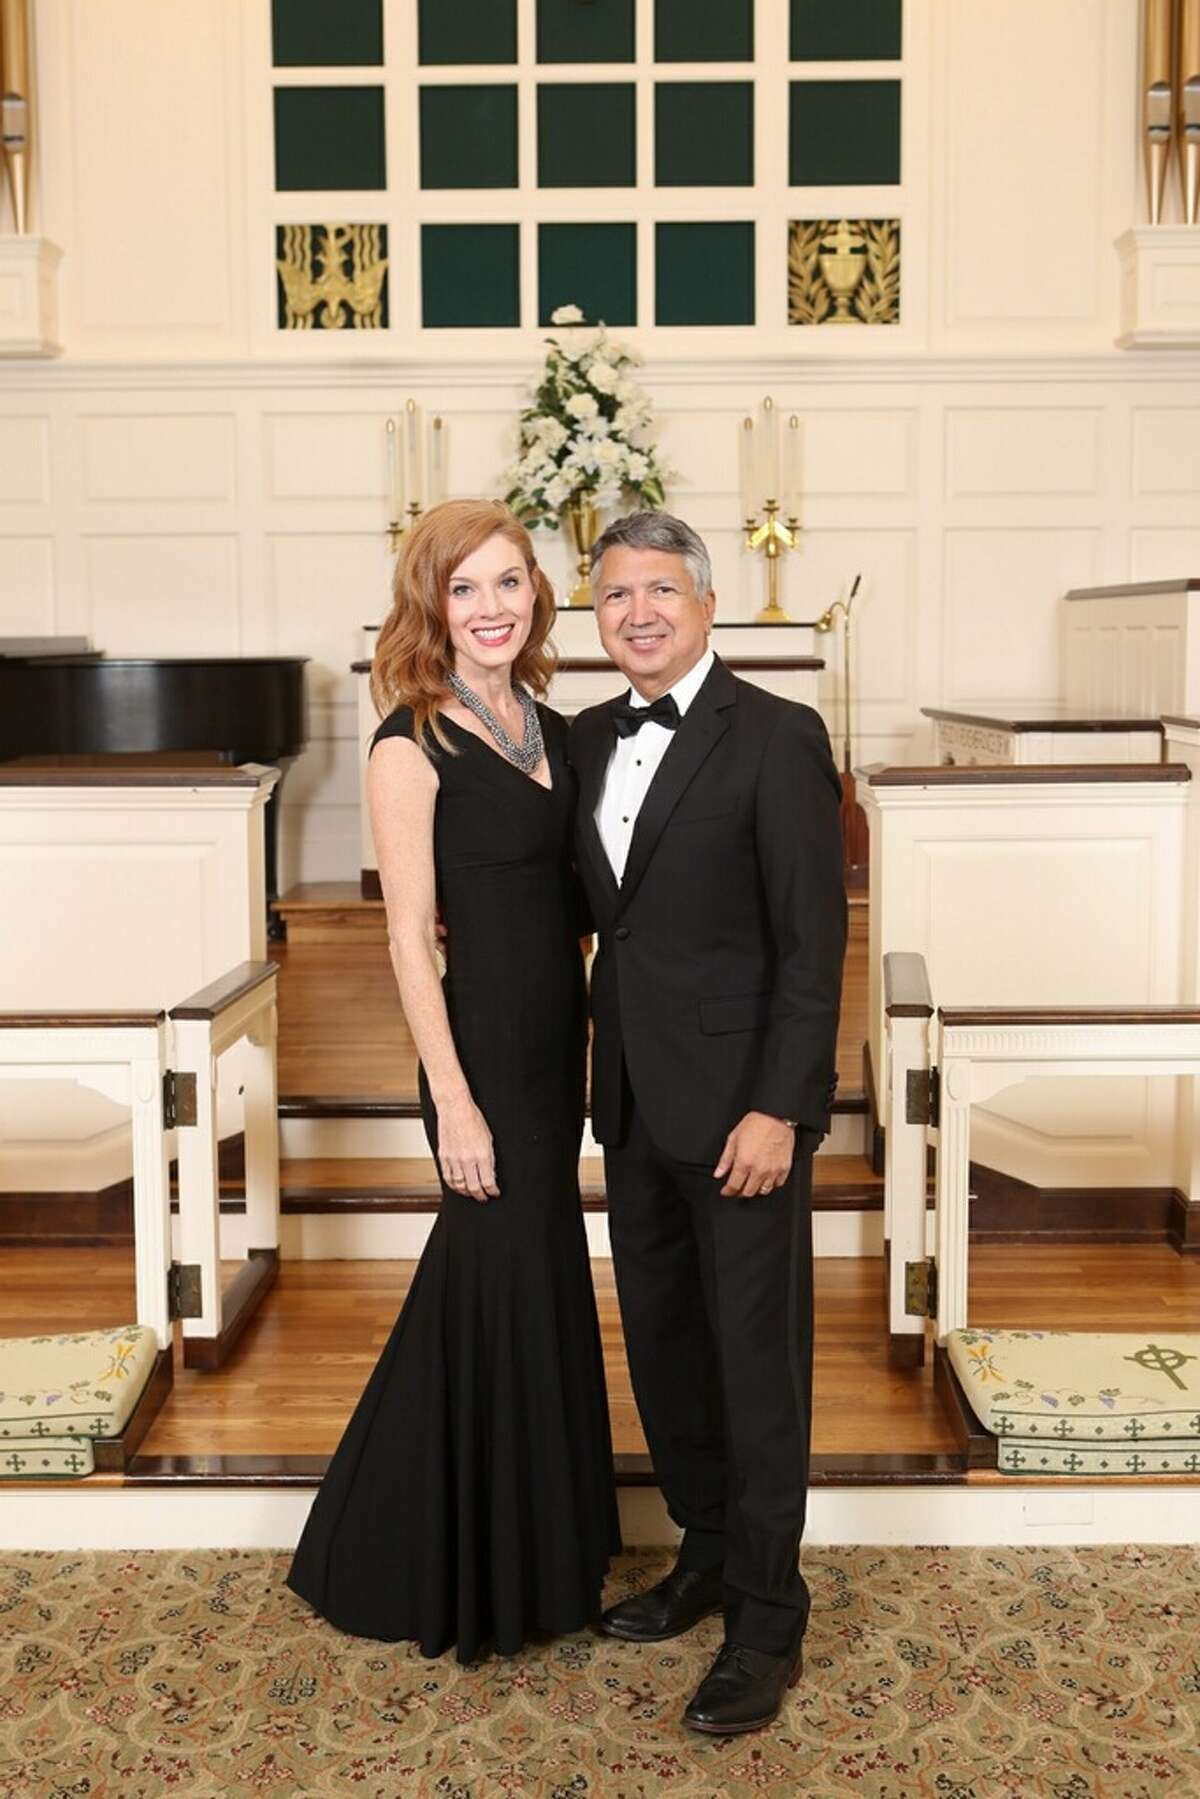 Best wishes are in order for KHOU anchor Ron Trevino and his new bride, Cheryl Martin.